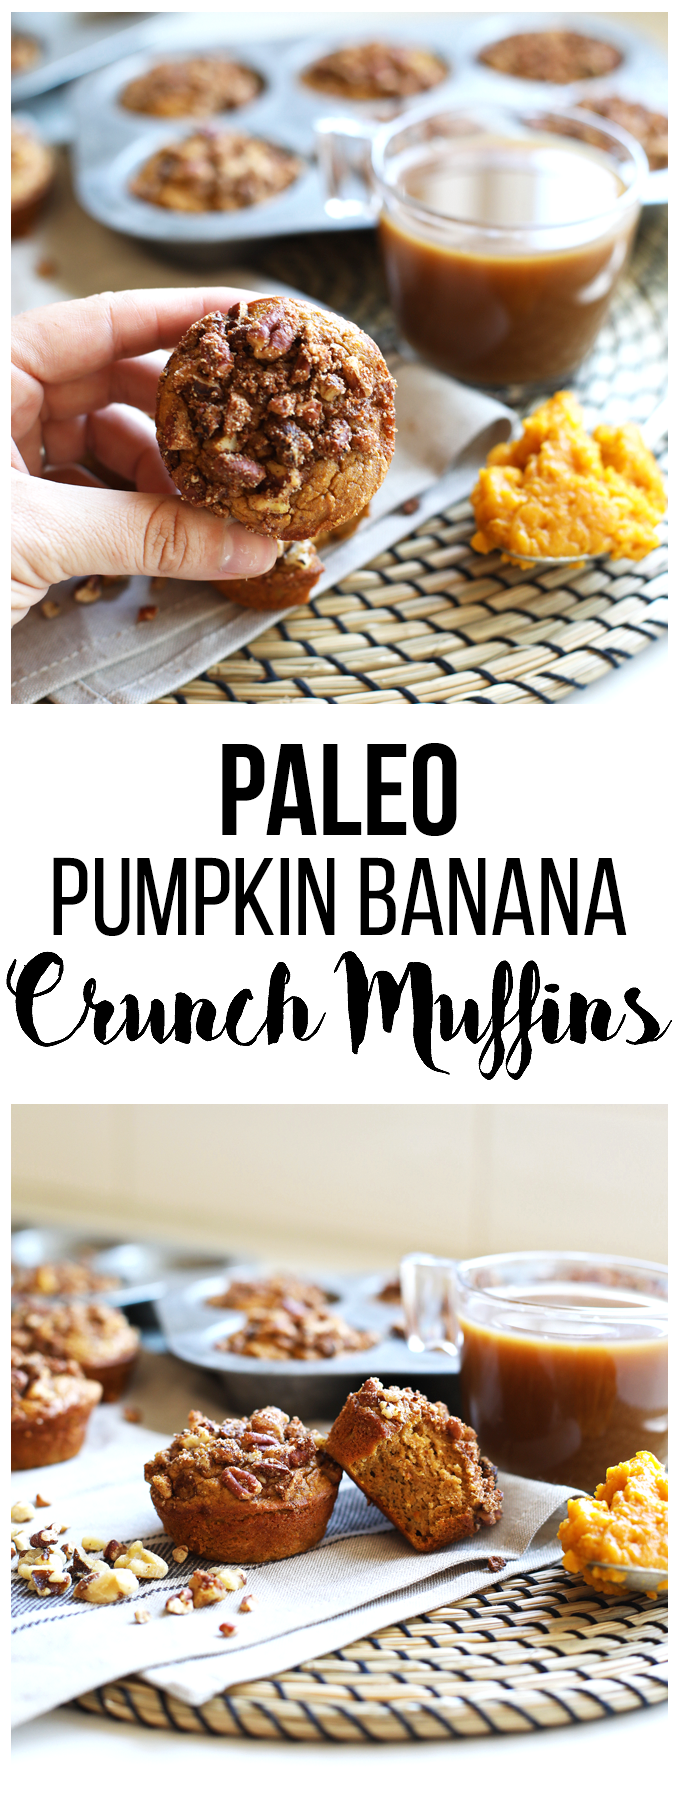 These Paleo Pumpkin Crunch Muffins are perfect for healthy holiday baking!